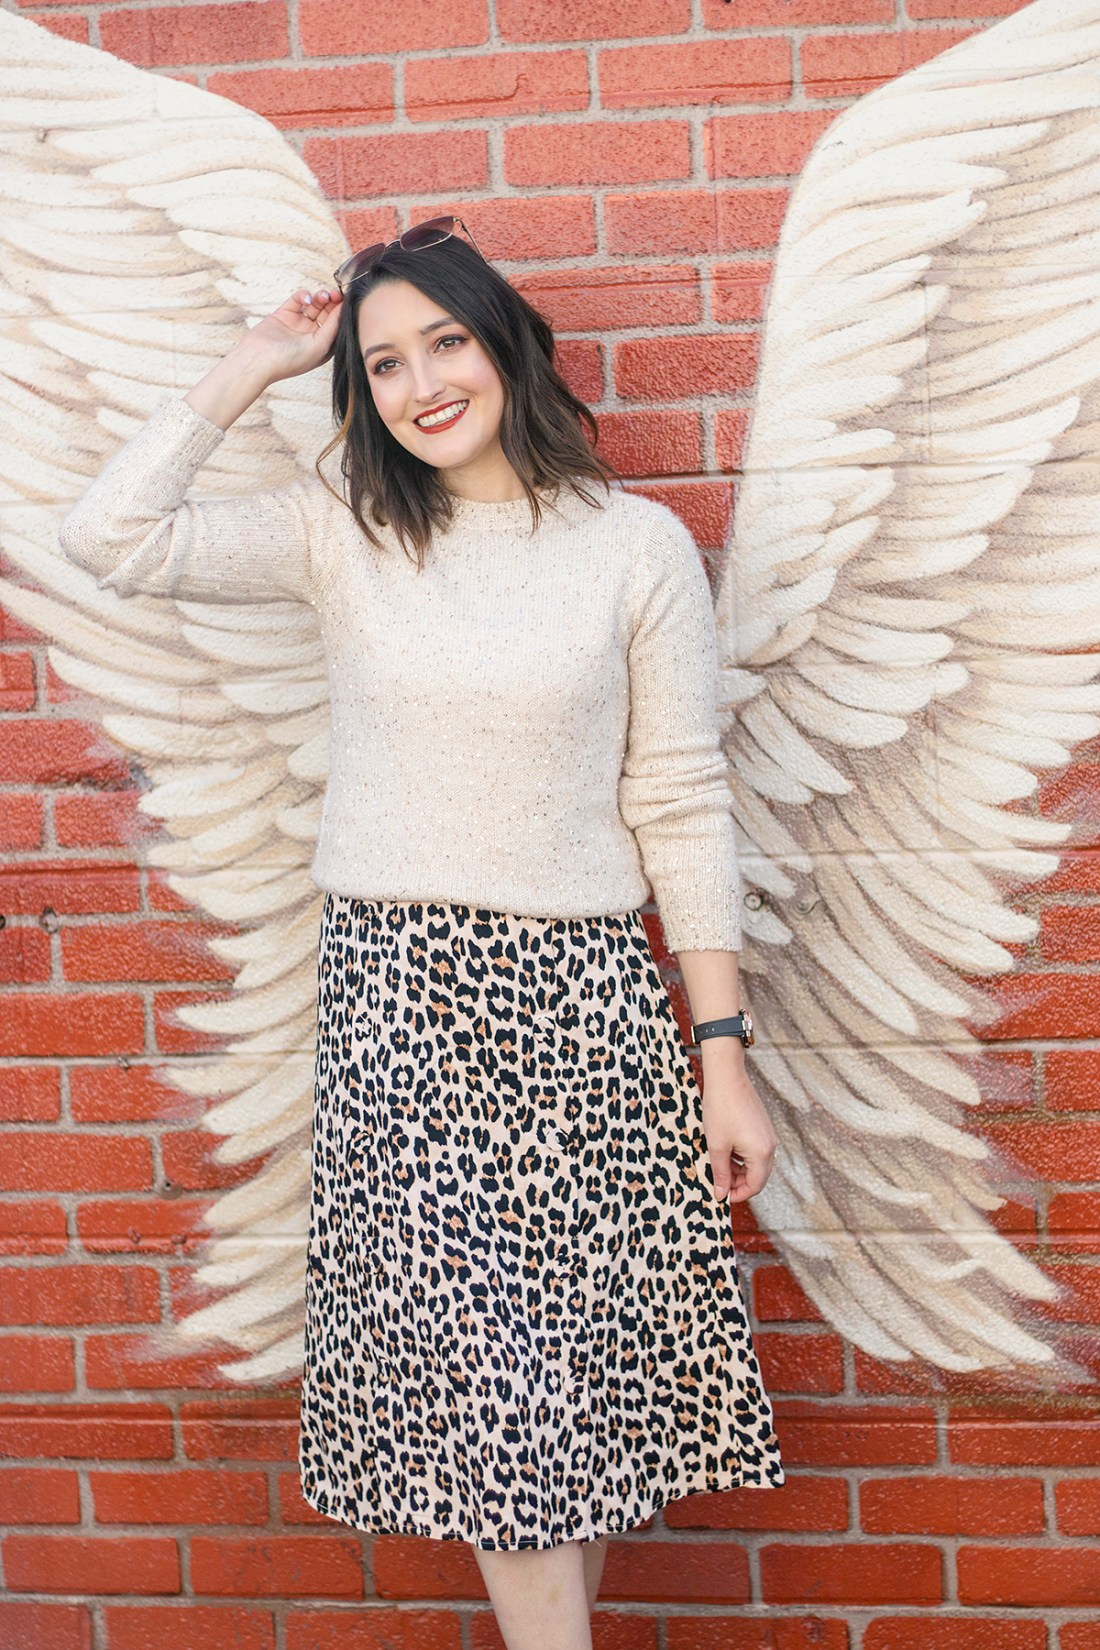 Holiday outfit: Sequins and leopard print | A Good Hue